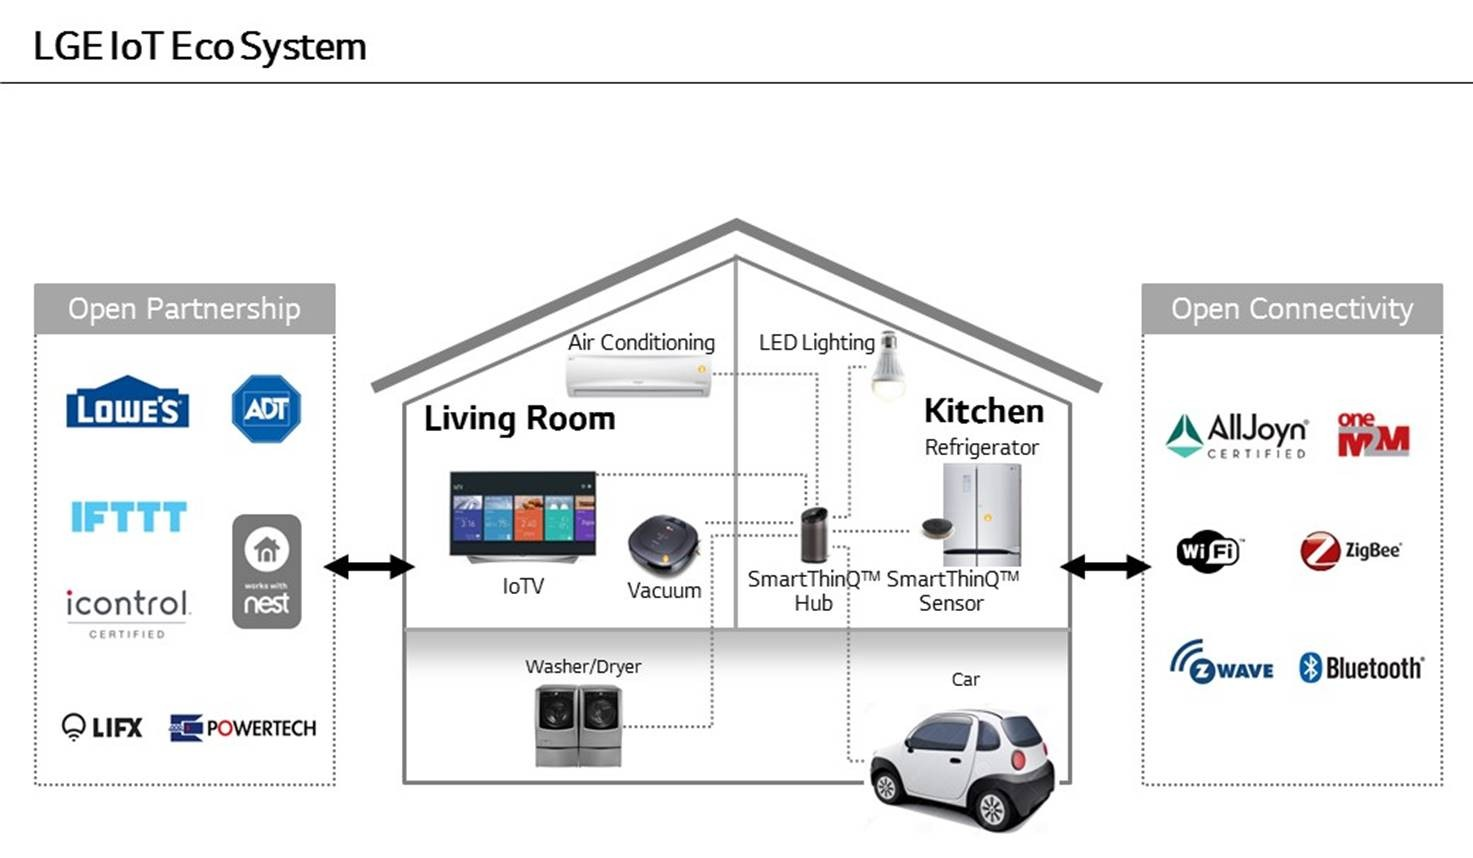 lg advances smart home ecosystem with smartthinq u2122 hub at